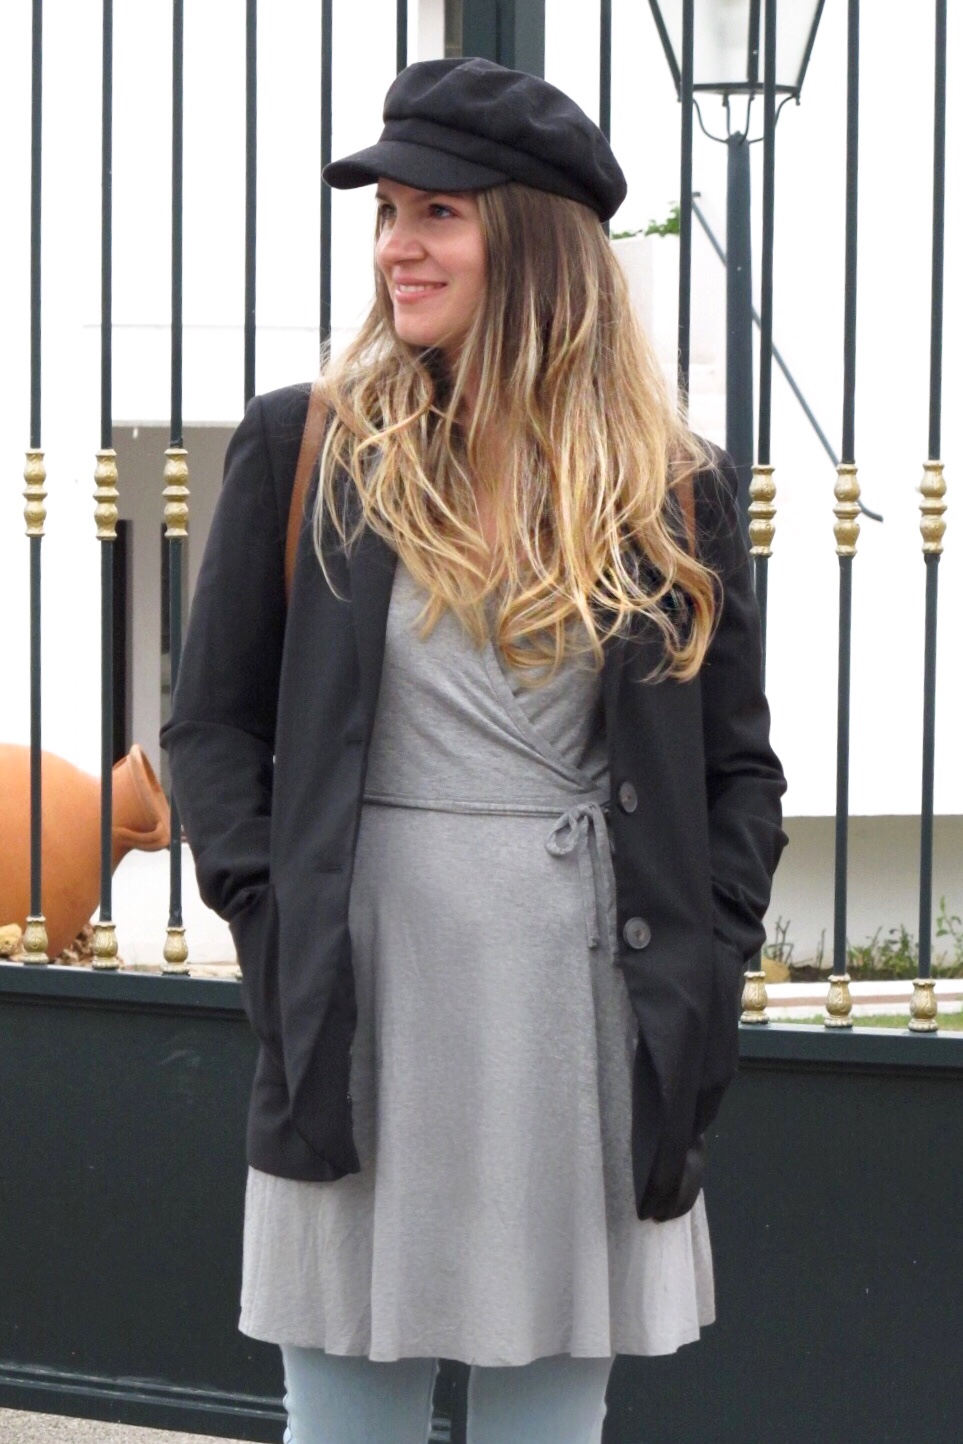 Bakerboy Hat. Fashion Blogger Girl by Style Blog Heartfelt Hunt. Girl with blond, loose curls wearing a bakerboy hat, blazer, jersey dress, destroyed jeans, Michael Kors backpack and lace-up ballet flats.